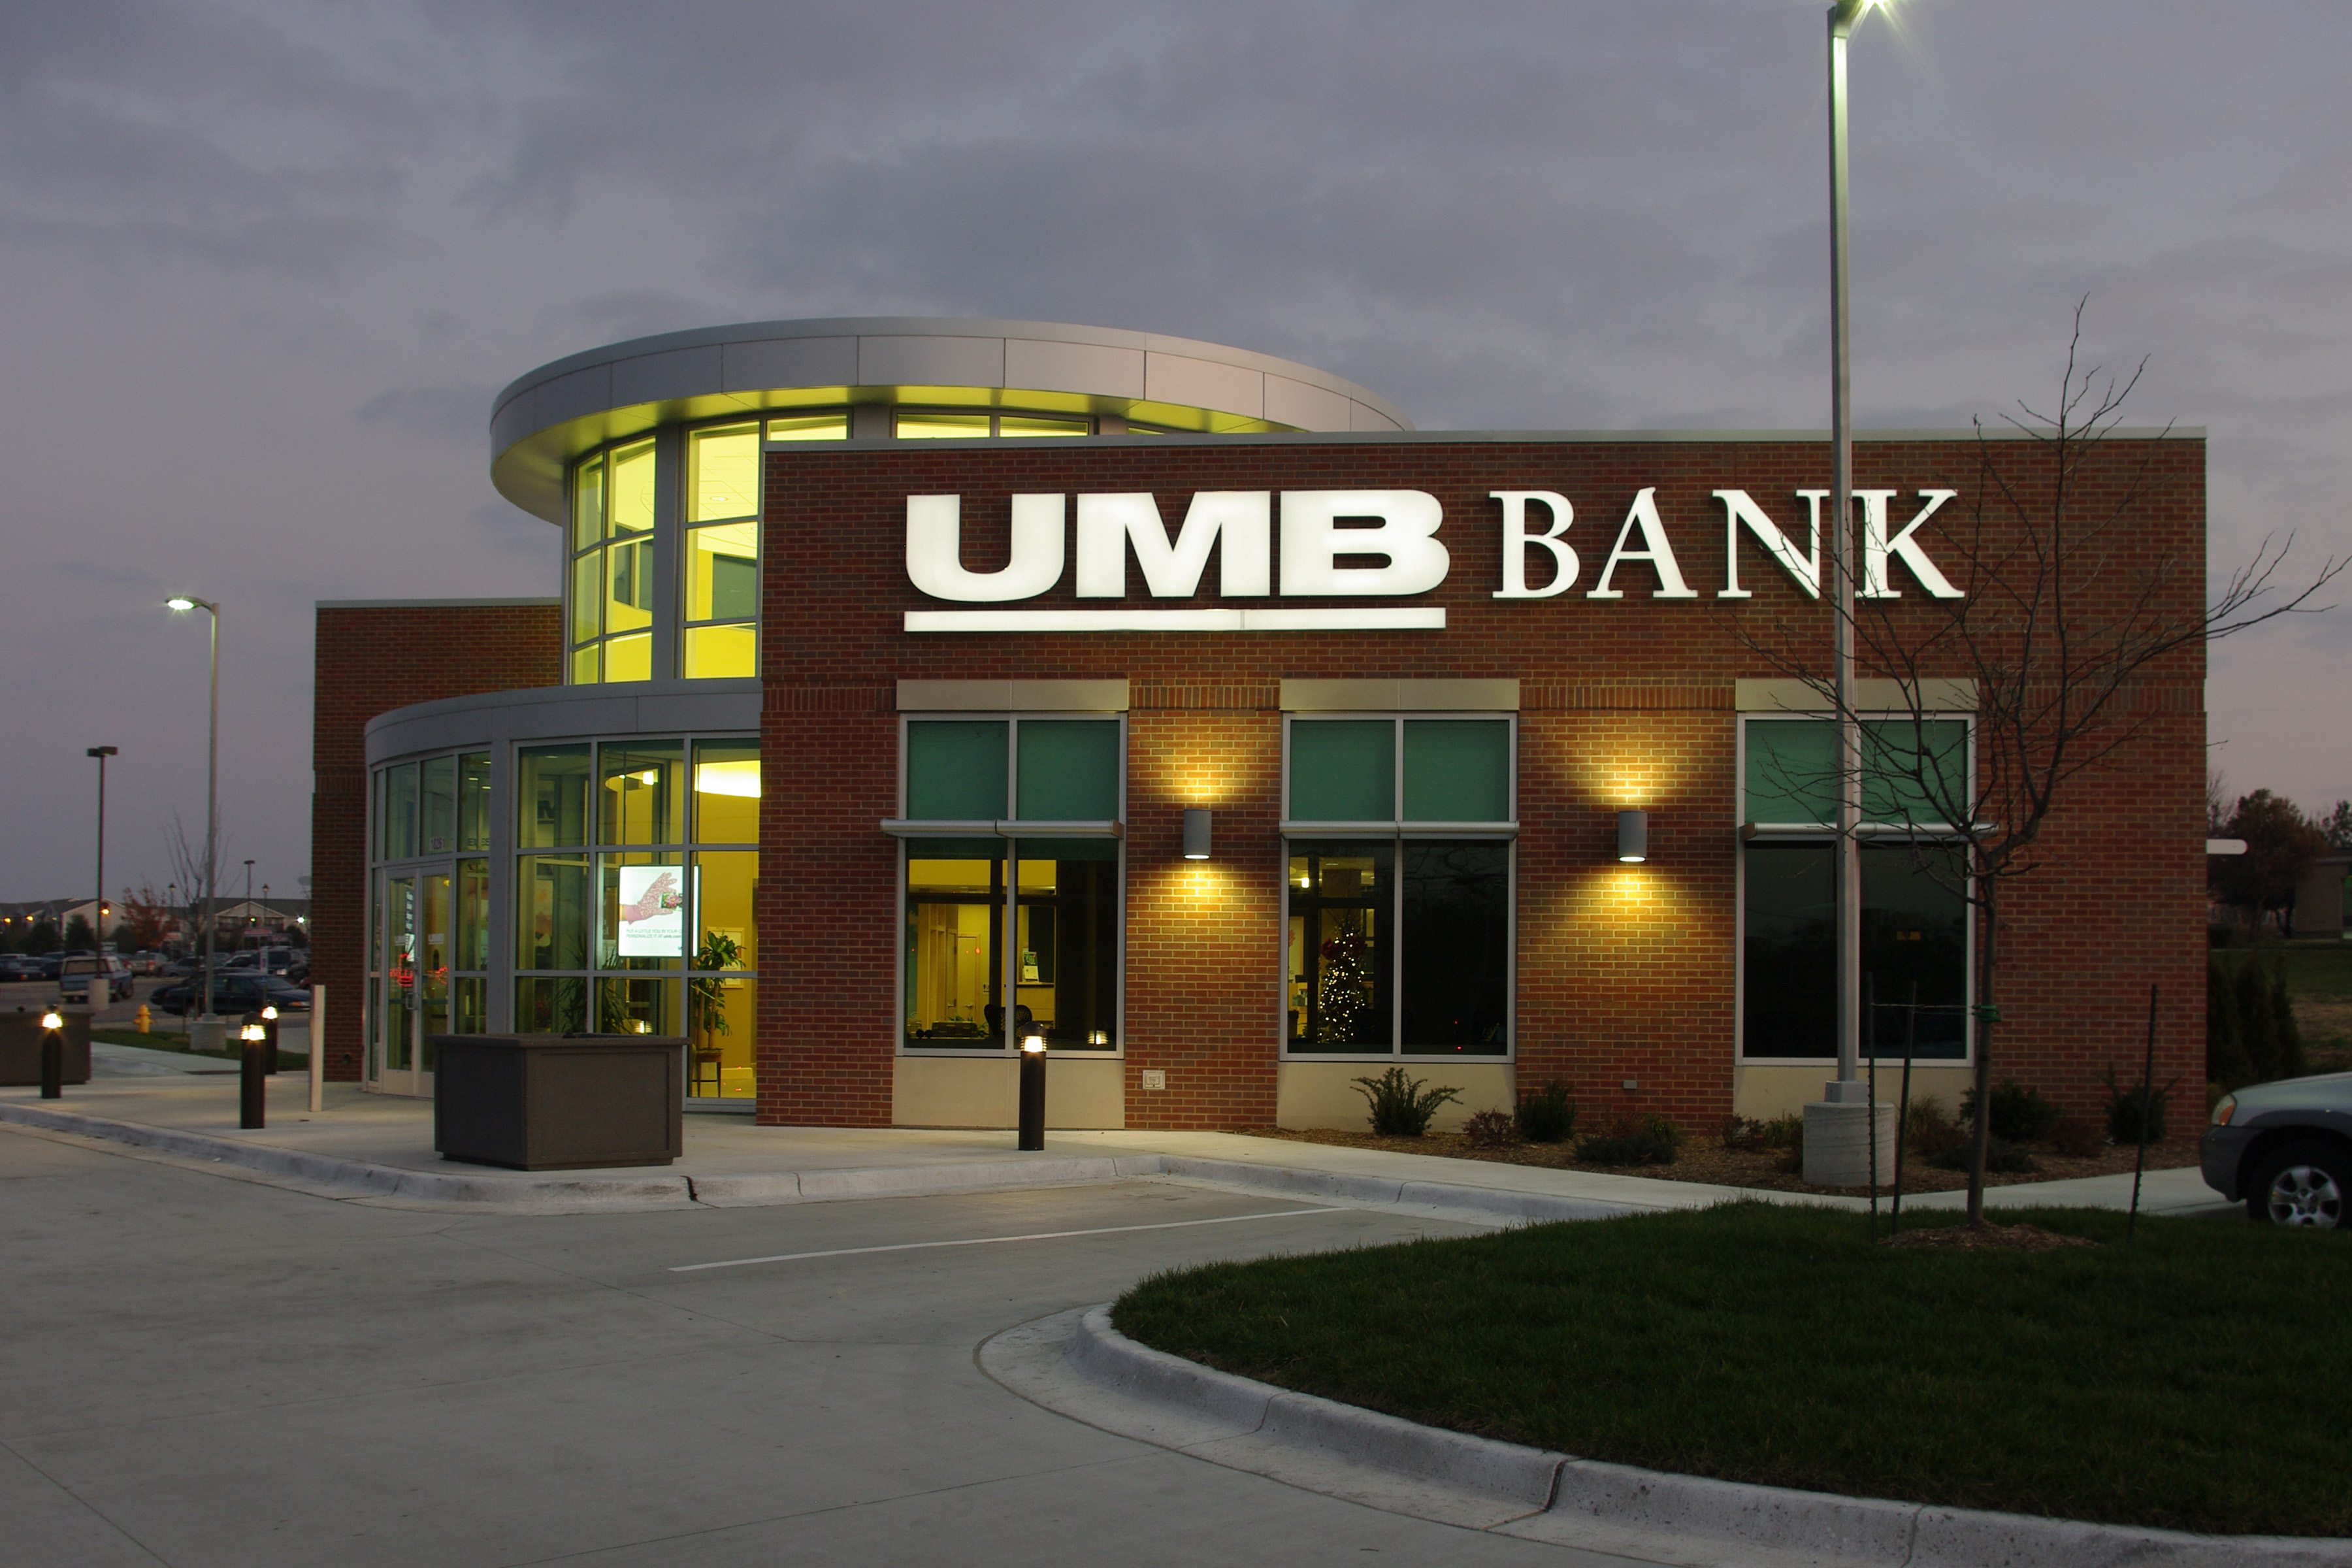 UMB Bank - Olathe, Kansas